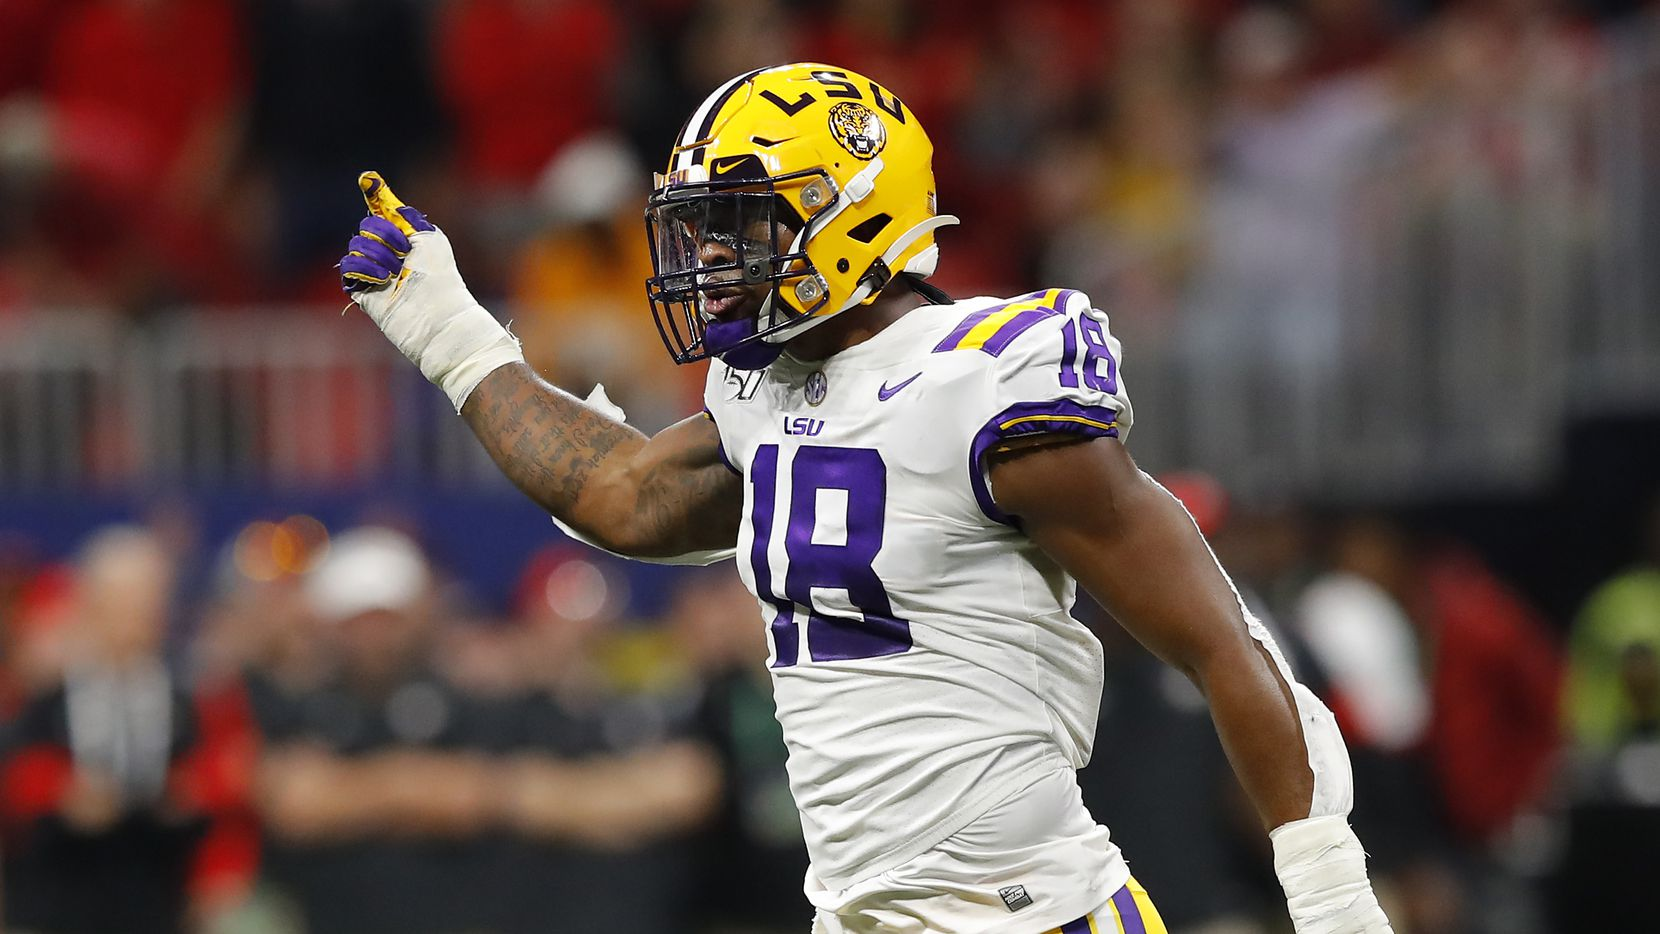 ATLANTA, GEORGIA - DECEMBER 07: K'Lavon Chaisson #18 of the LSU Tigers reacts in the first half against the Georgia Bulldogs during the SEC Championship game at Mercedes-Benz Stadium on December 07, 2019 in Atlanta, Georgia.